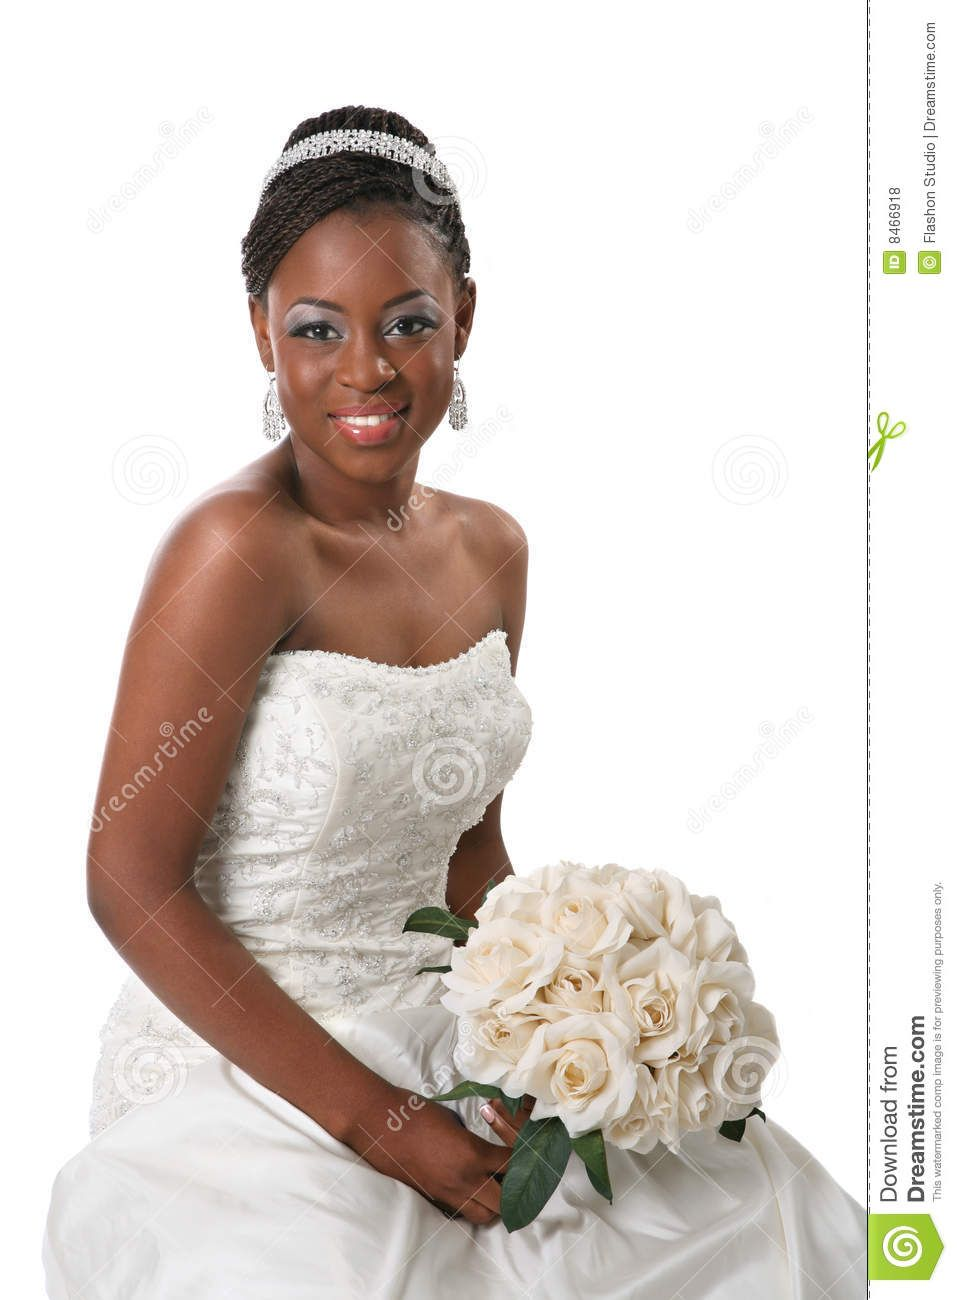 African Bride Beautiful American Portrait Royalty Free Stock Photos